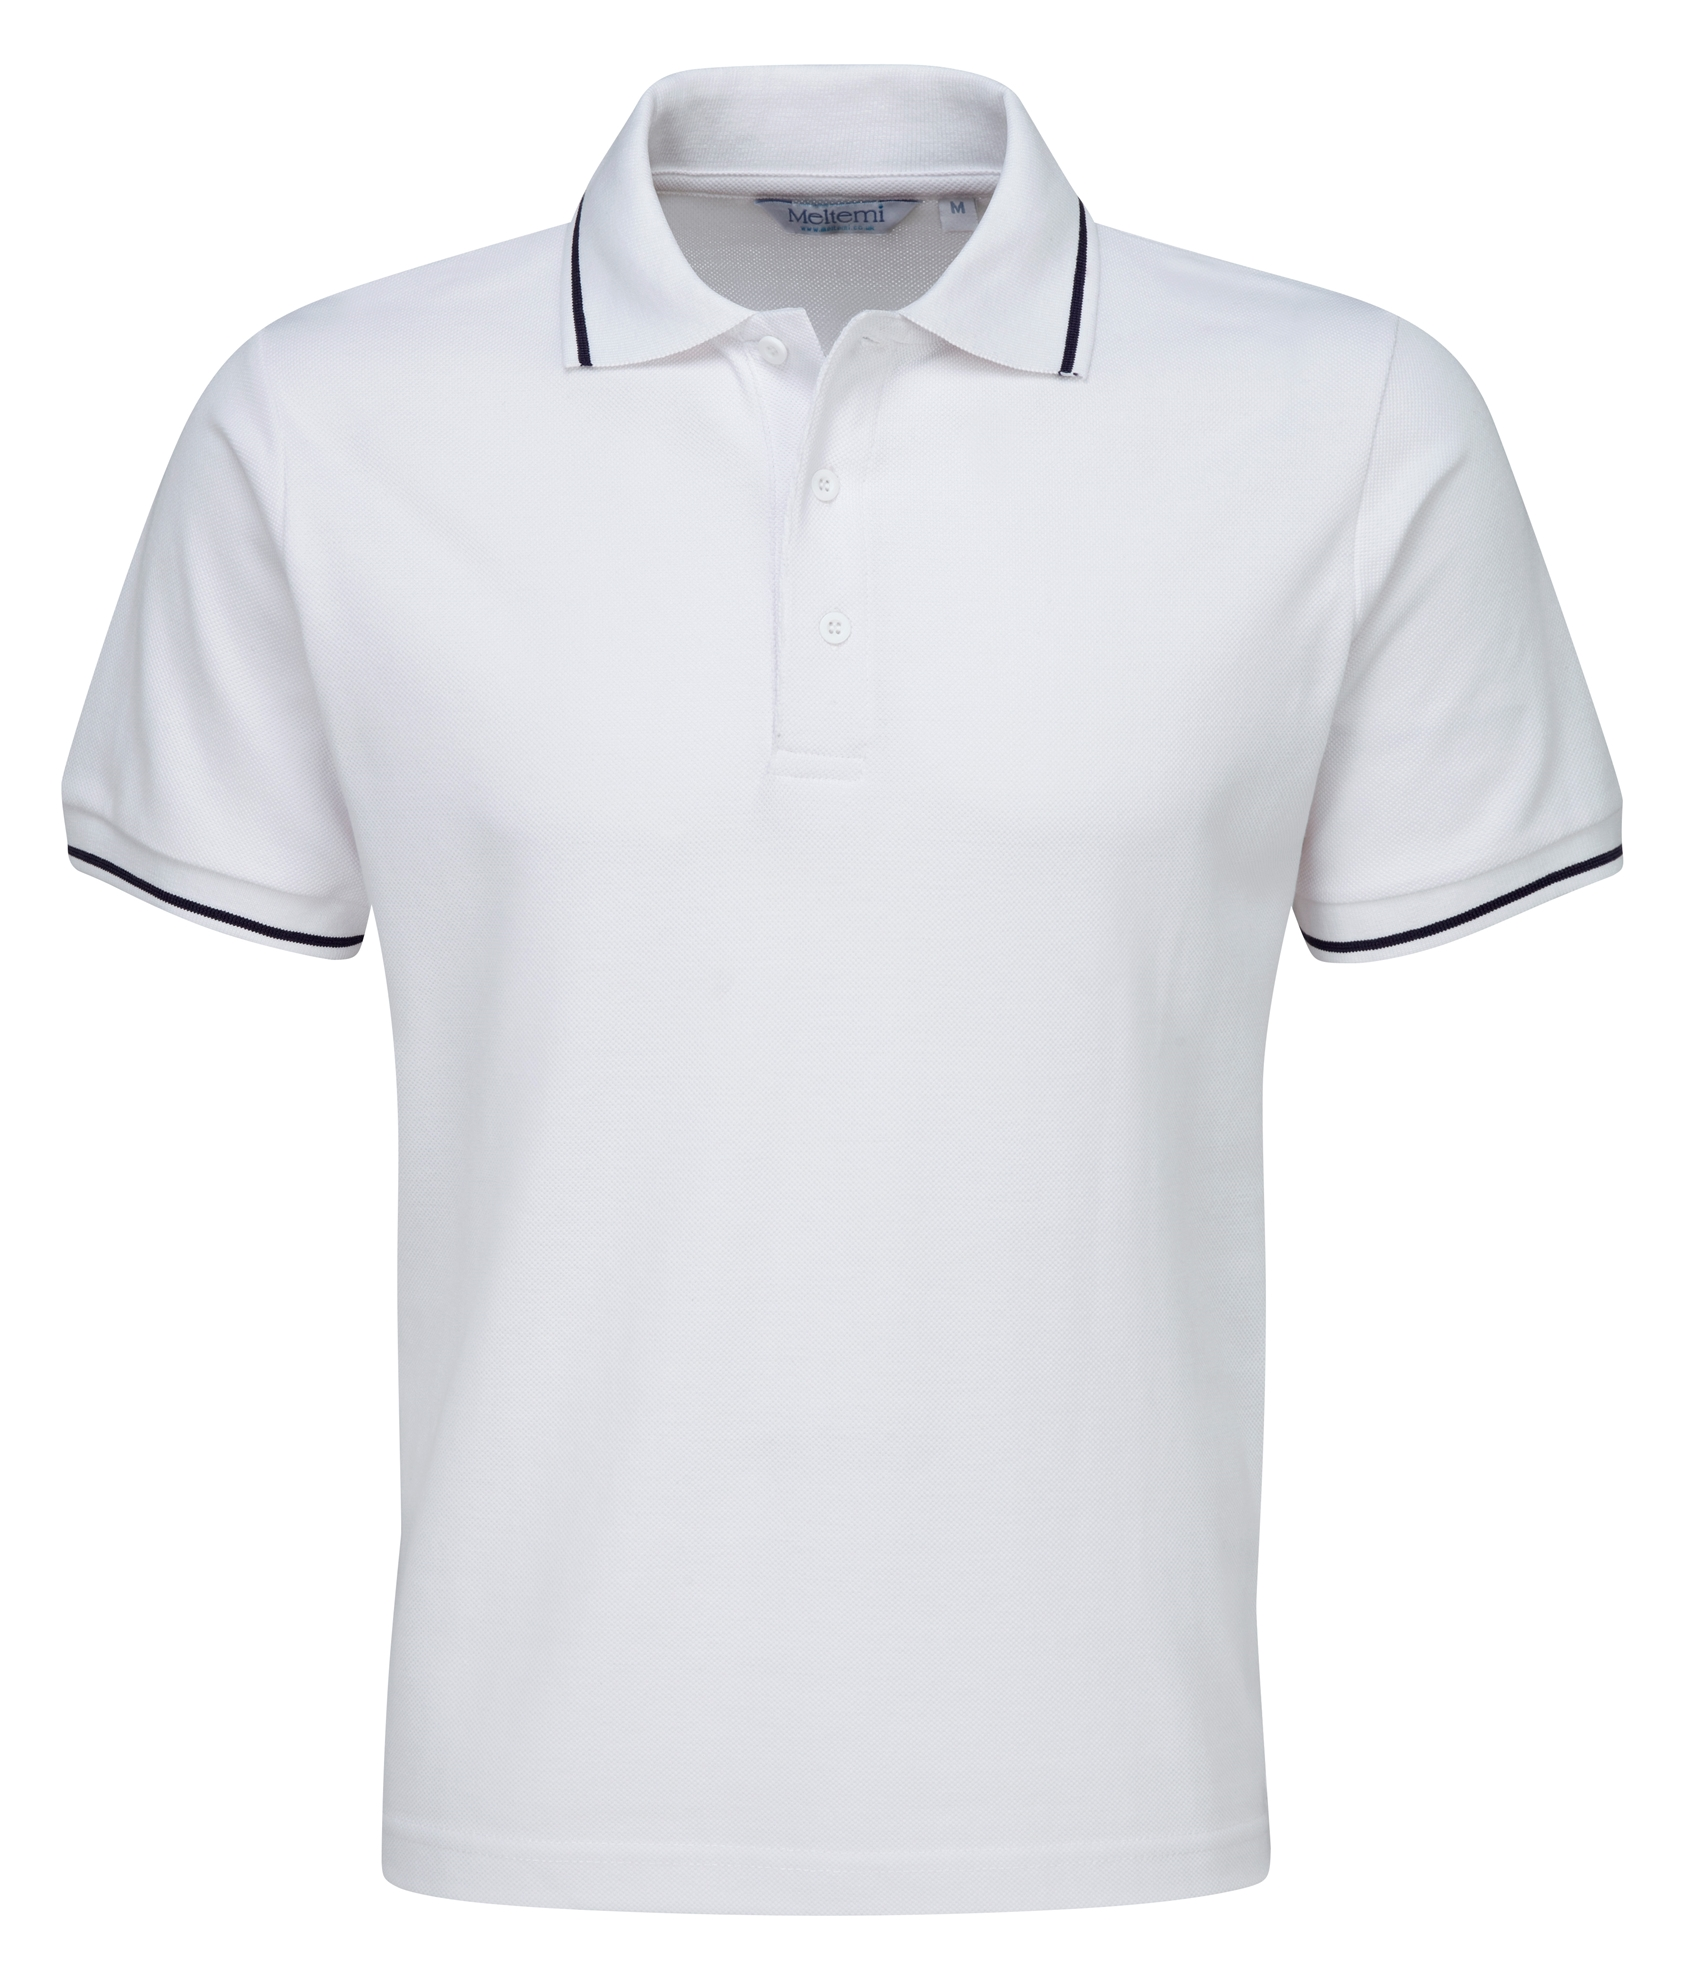 Picture of Single Tipped Polo Shirt - White/Navy